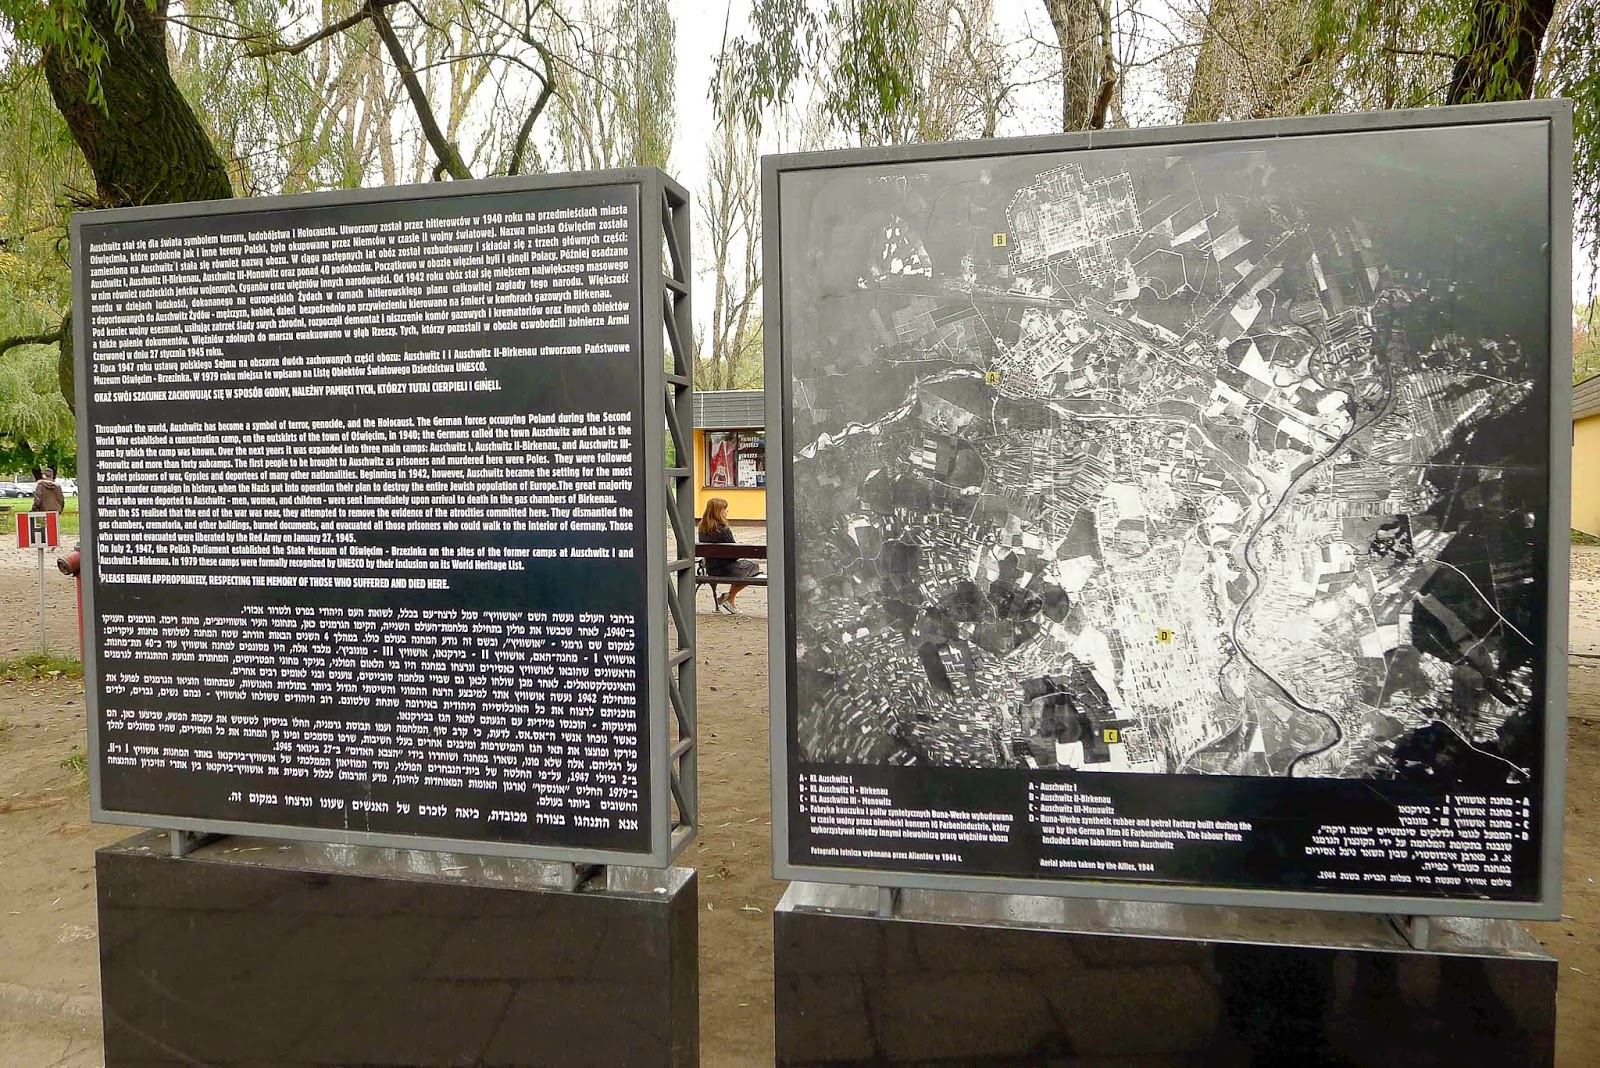 Map and History of Auschwitz